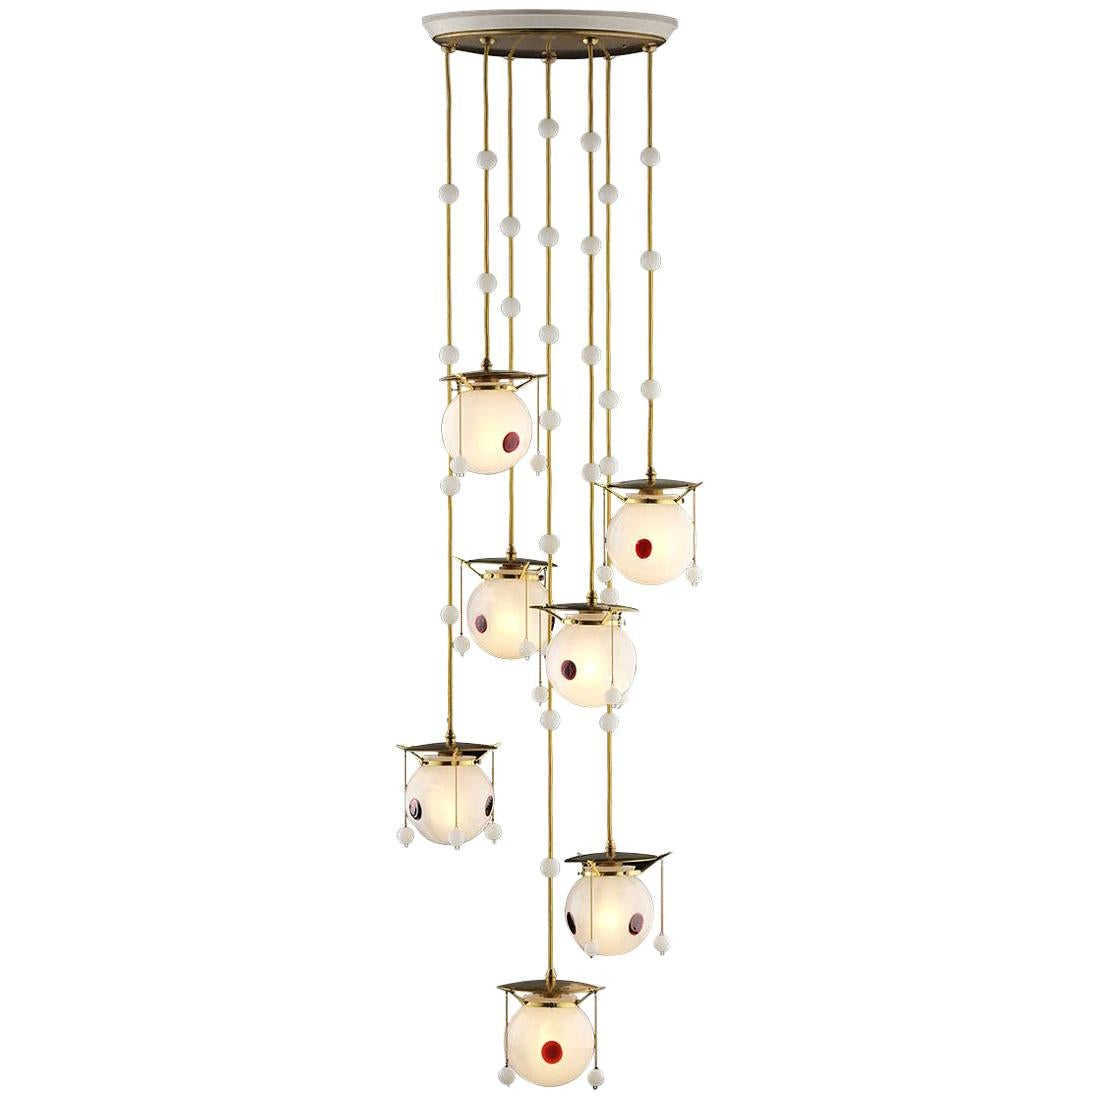 Koloman Moser and Josef Hoffmann Jugendstil Chandelier, Re-Edition